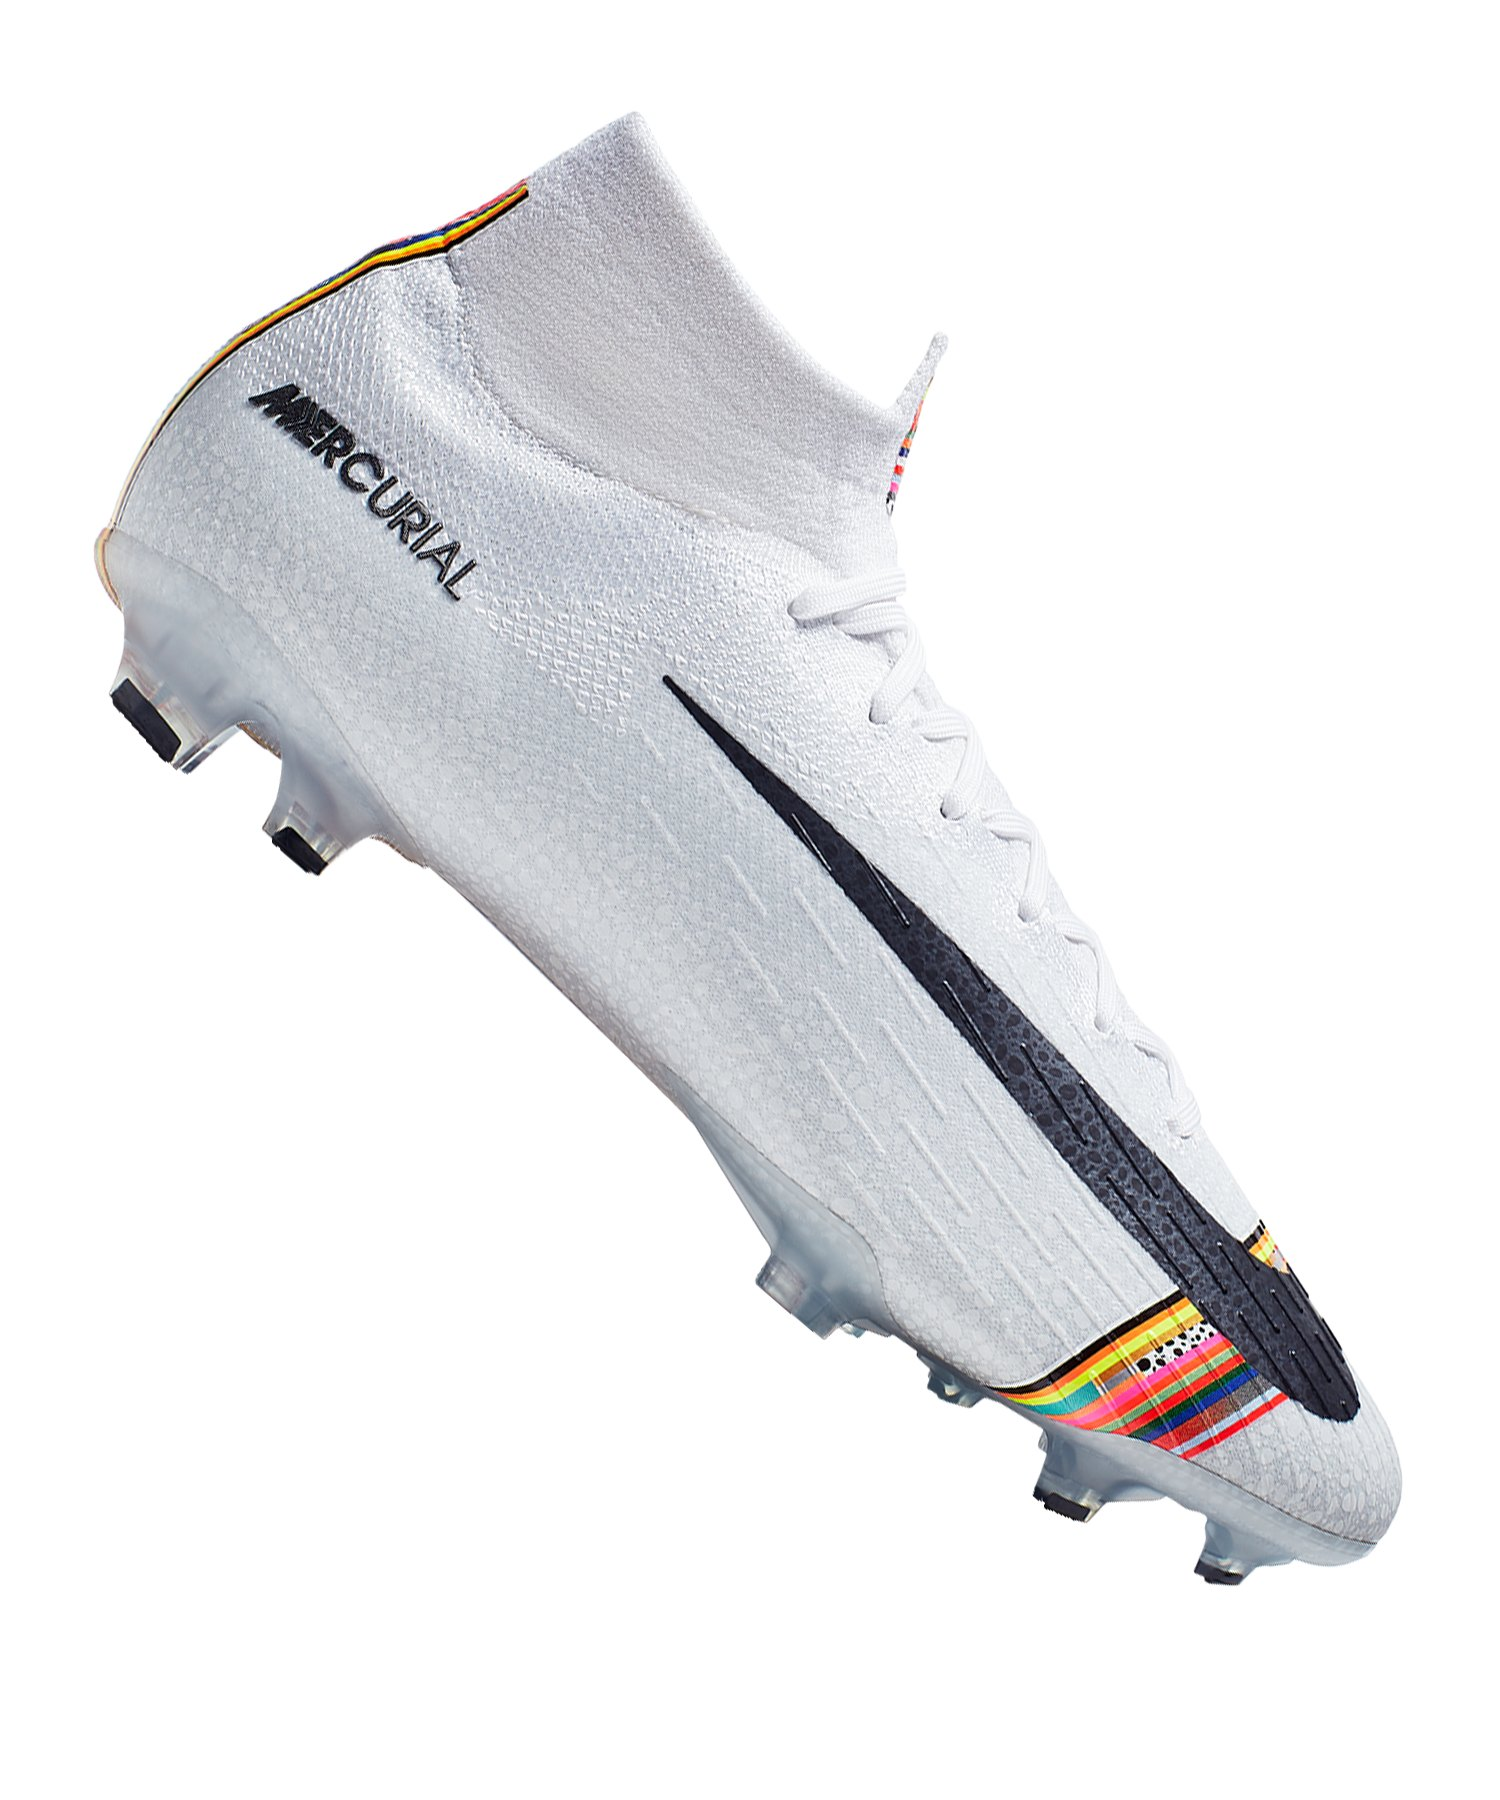 F009 Nike Superfly Weiss Fg Mercurial Vi Elite dtrshQ